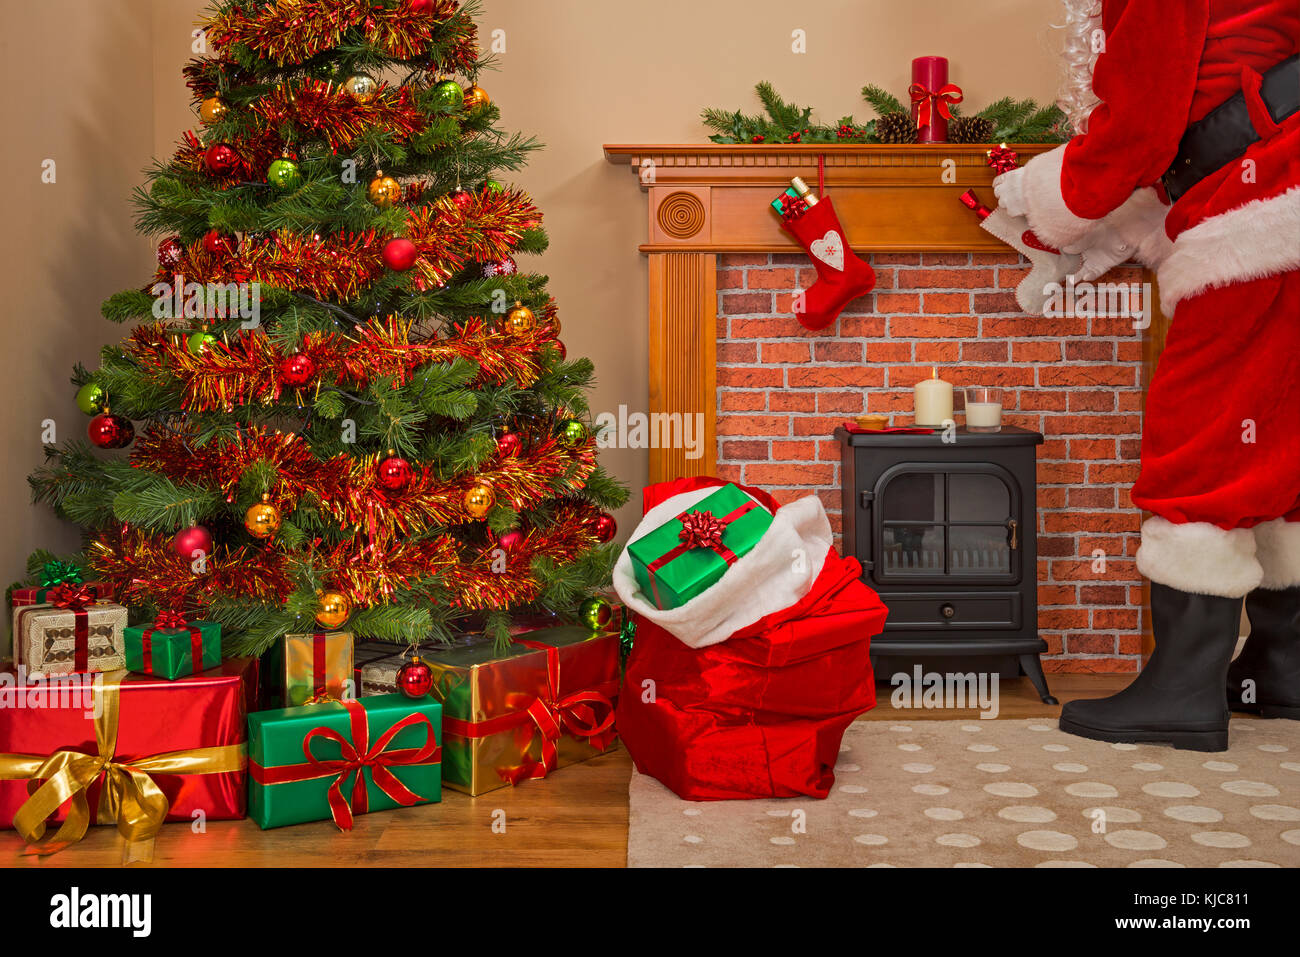 Santa Claus delivering gift wrapped presents under the tree on Christmas Eve with a sack full of toys for good girls - Stock Image